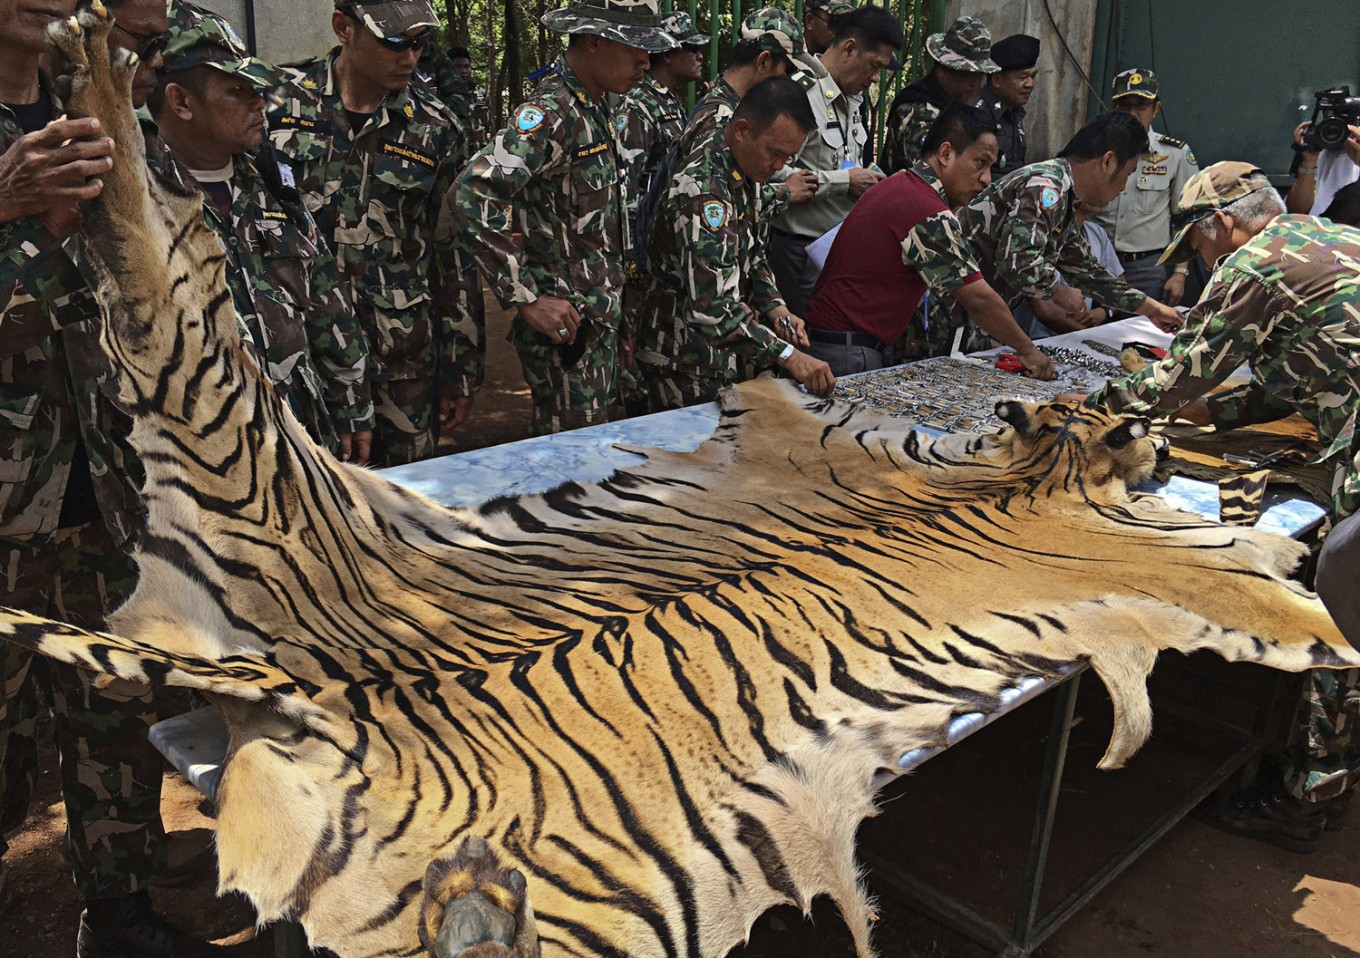 Interpol: $5.1 million of illegal wildlife and timber seized